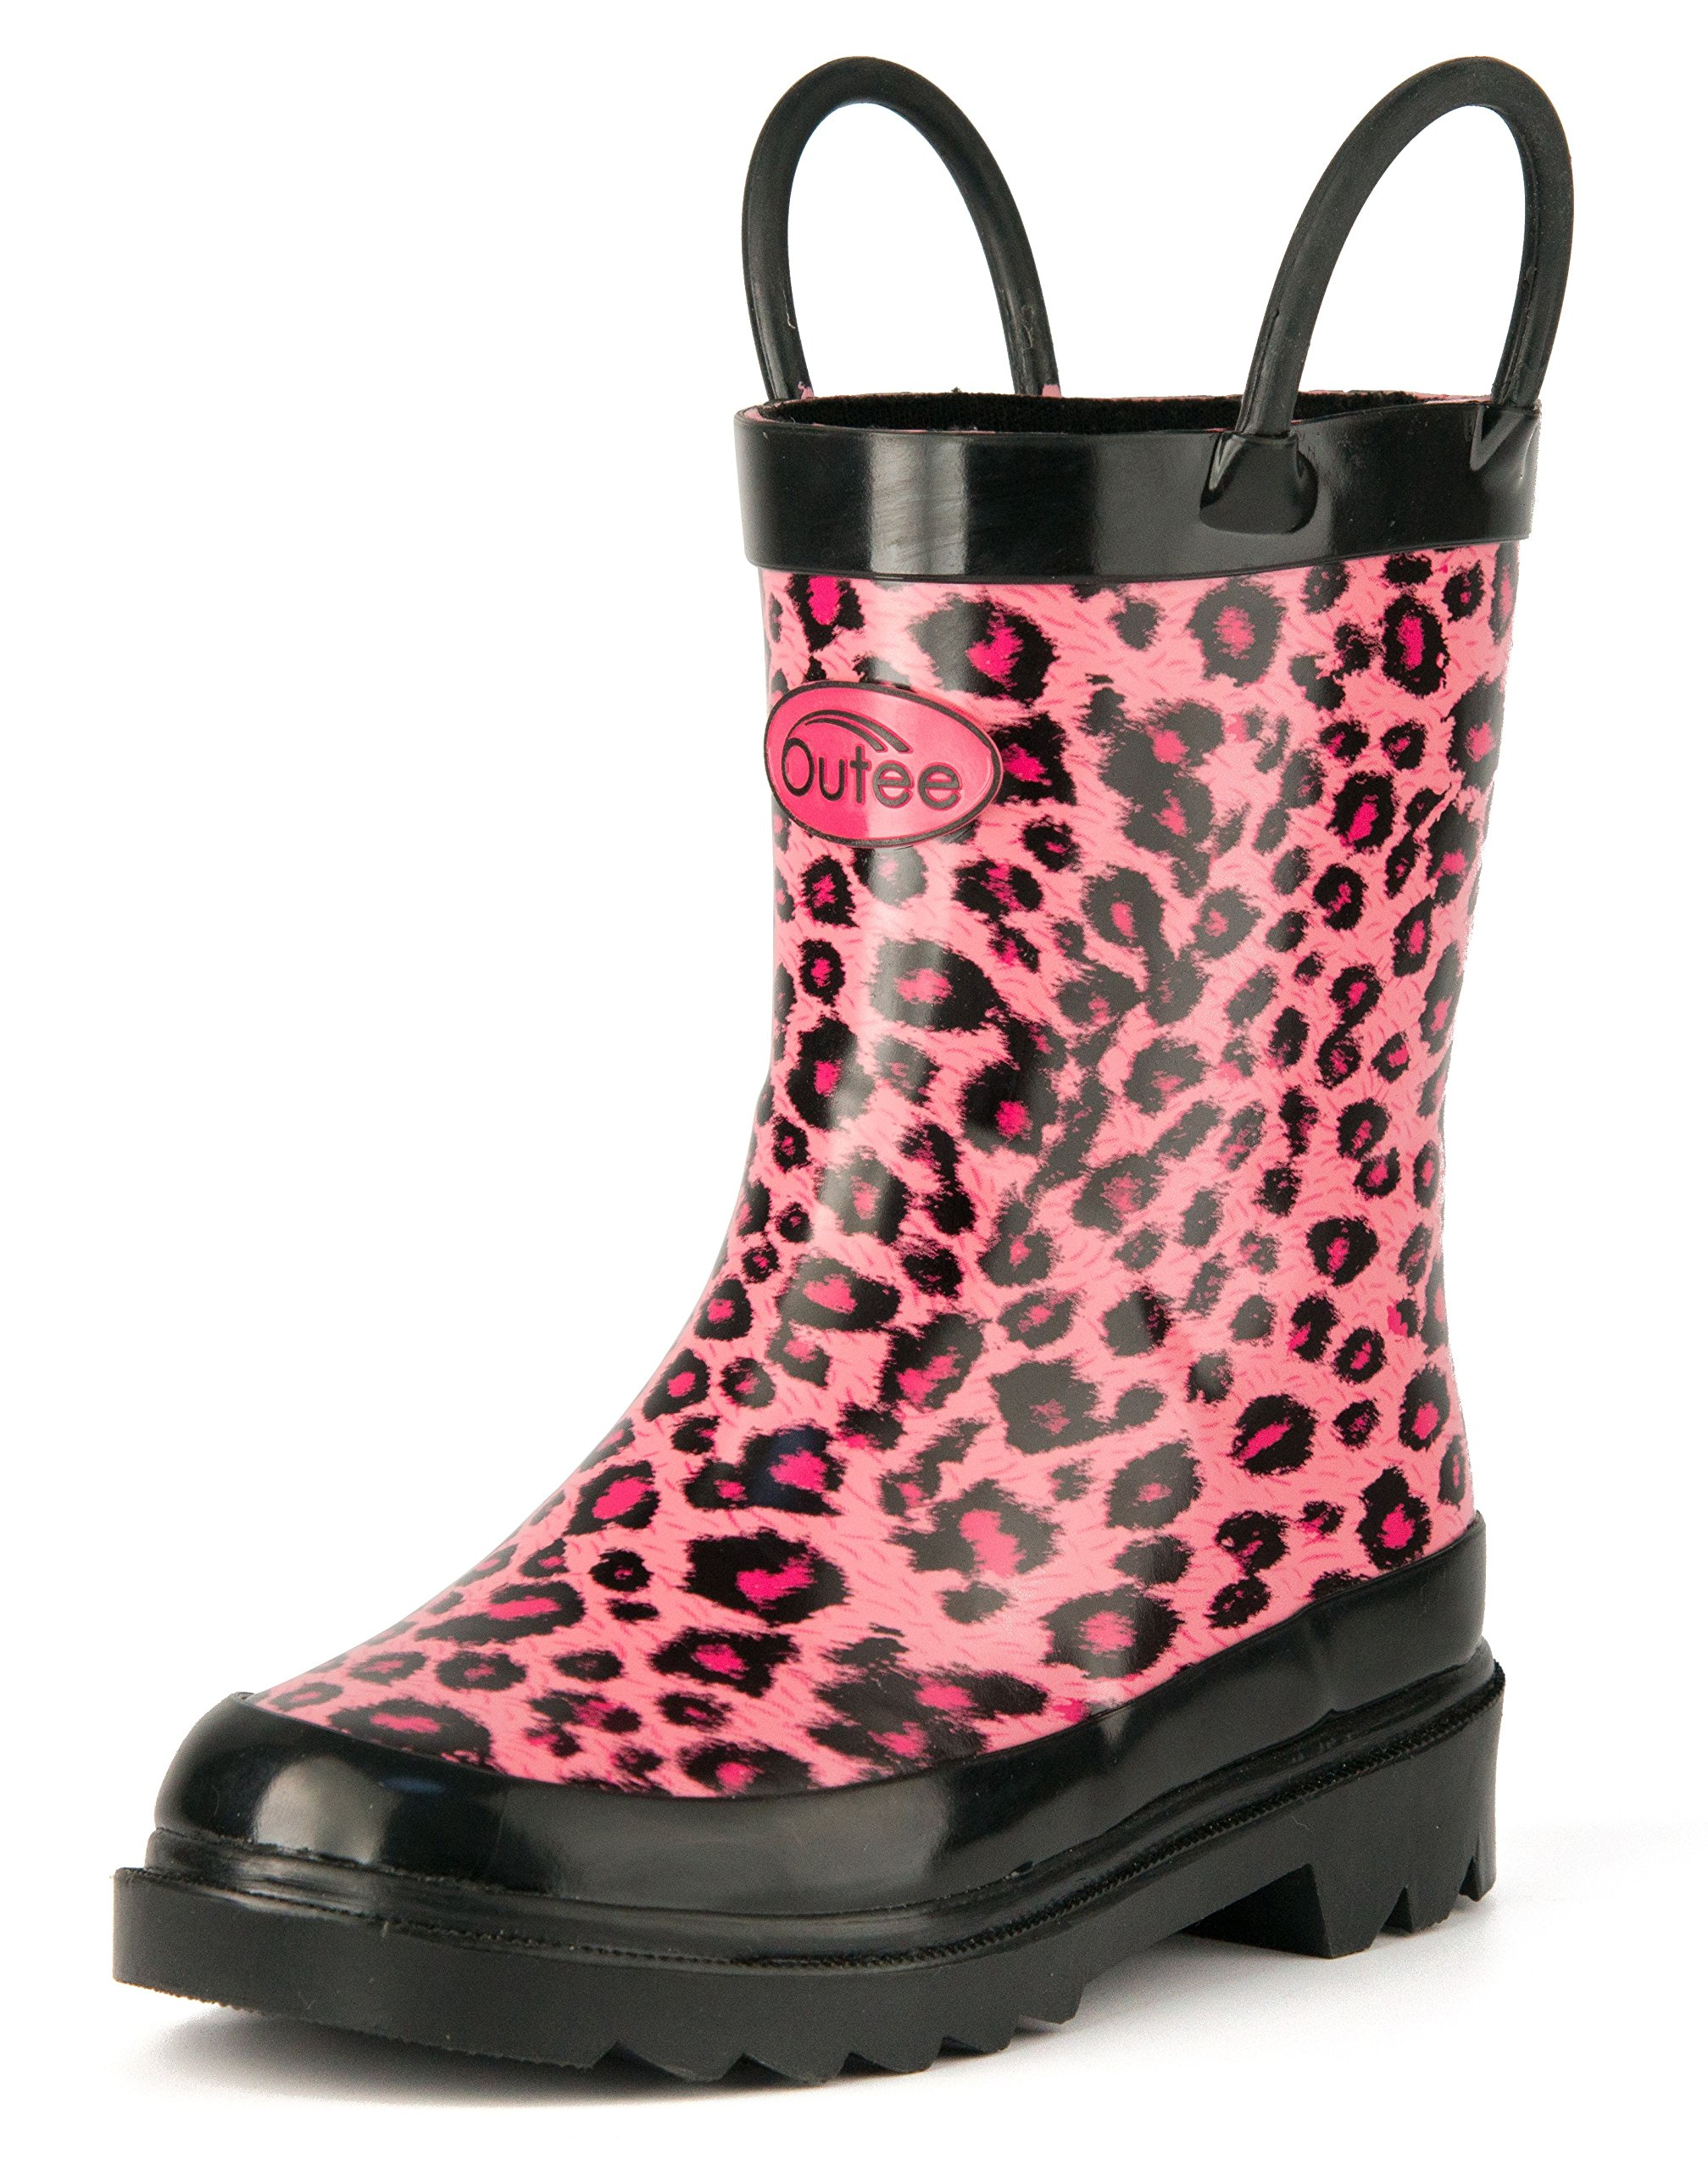 Outee Toddler Girls Kids Rubber Rain Boots Waterproof Shoes Pink Leopard Printed with Easy-On Handles Classic Comfortable Removable Insoles Anti-Slippery Durable Sole with Grip (Size 8,Pink)